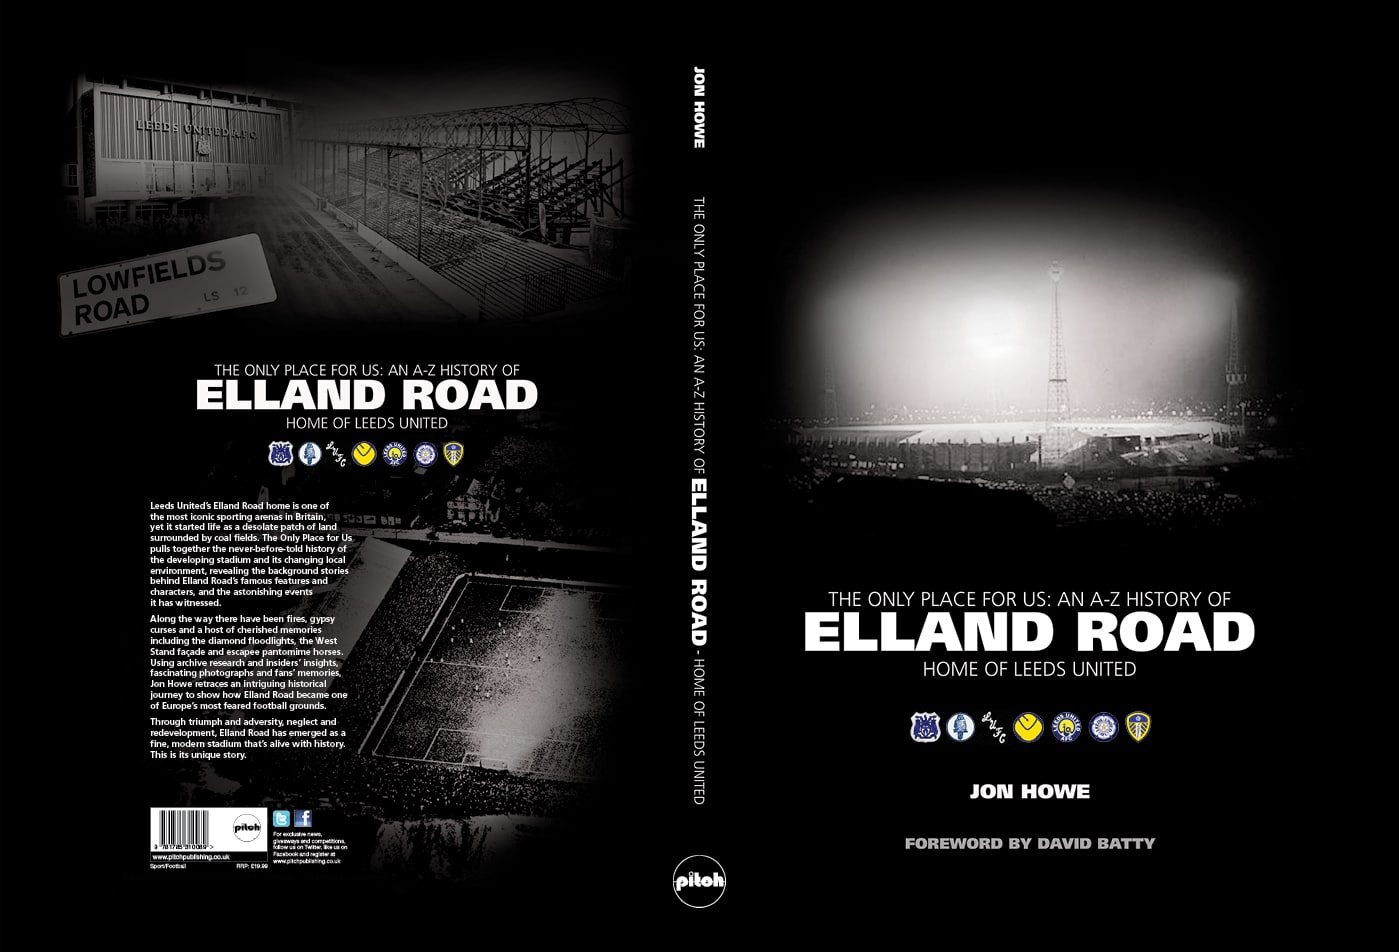 The Only Place For Us: An A-Z History of Elland Road